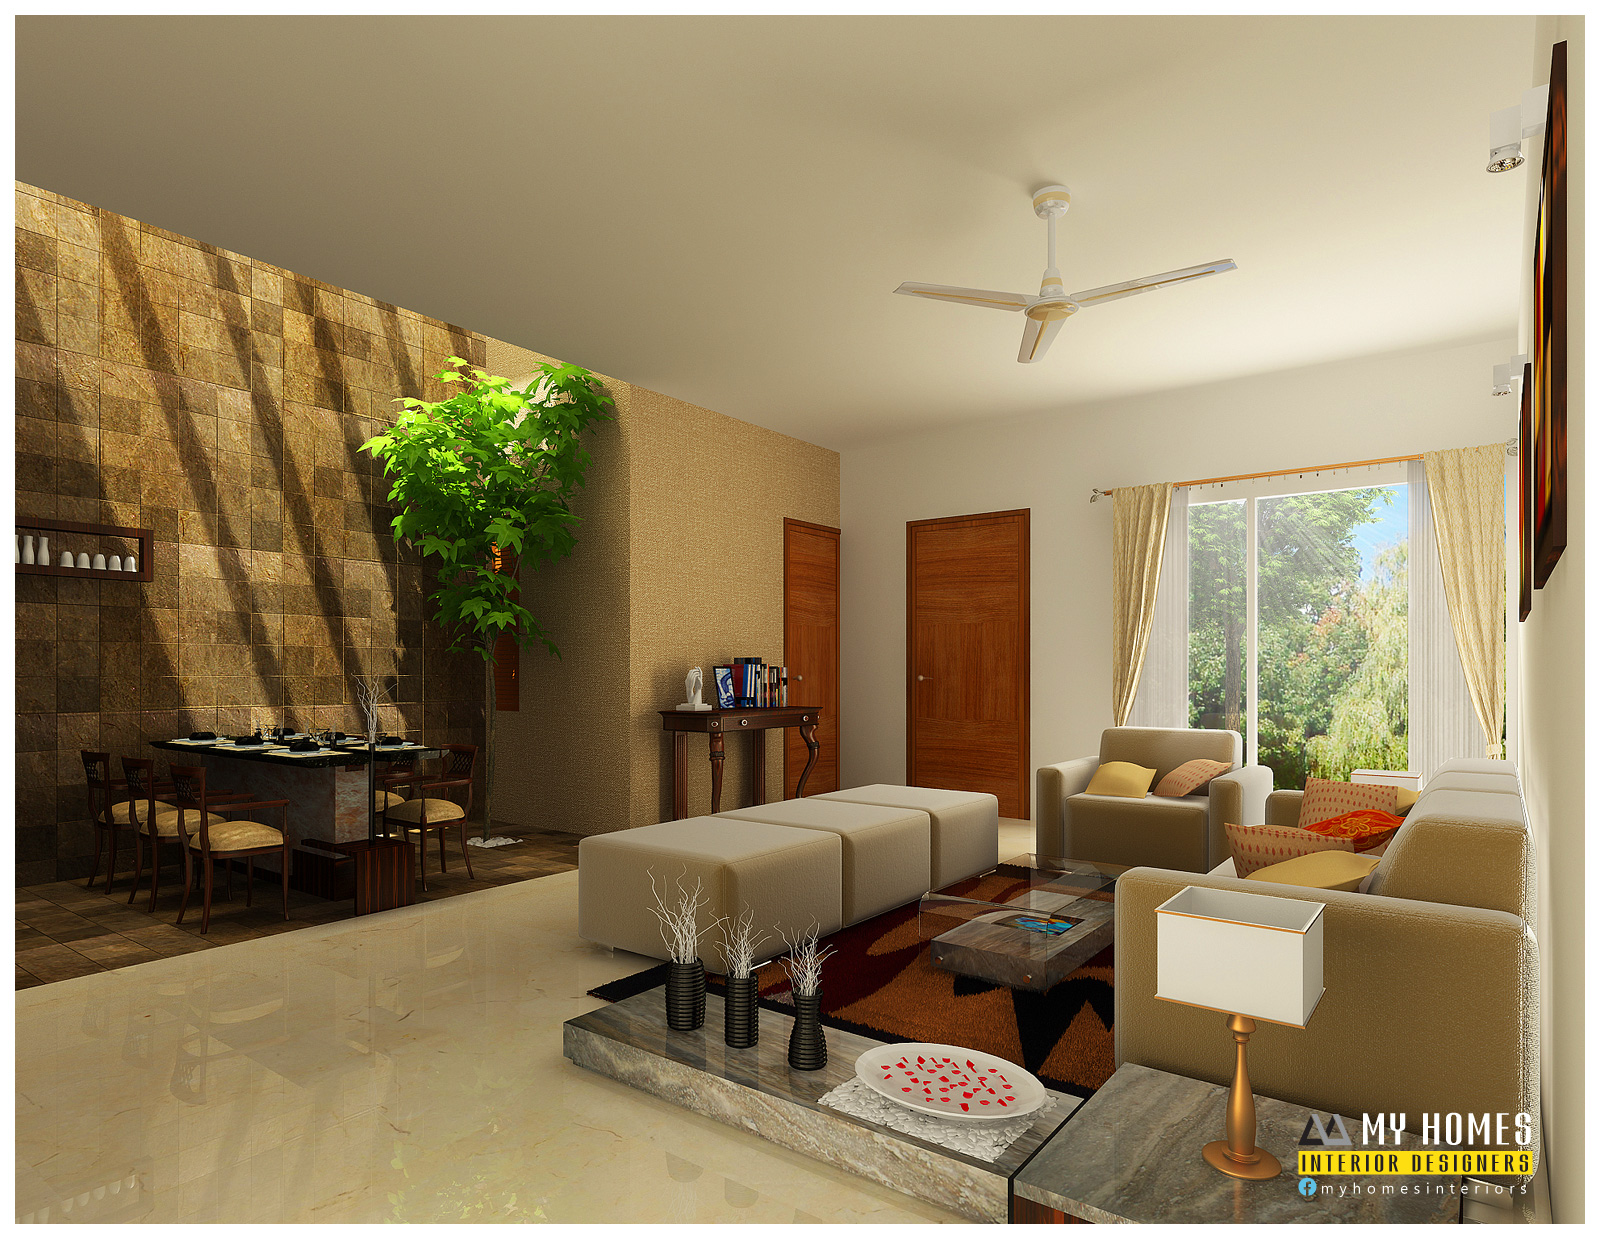 Kerala interior design ideas from designing company thrissur for New home design ideas kerala